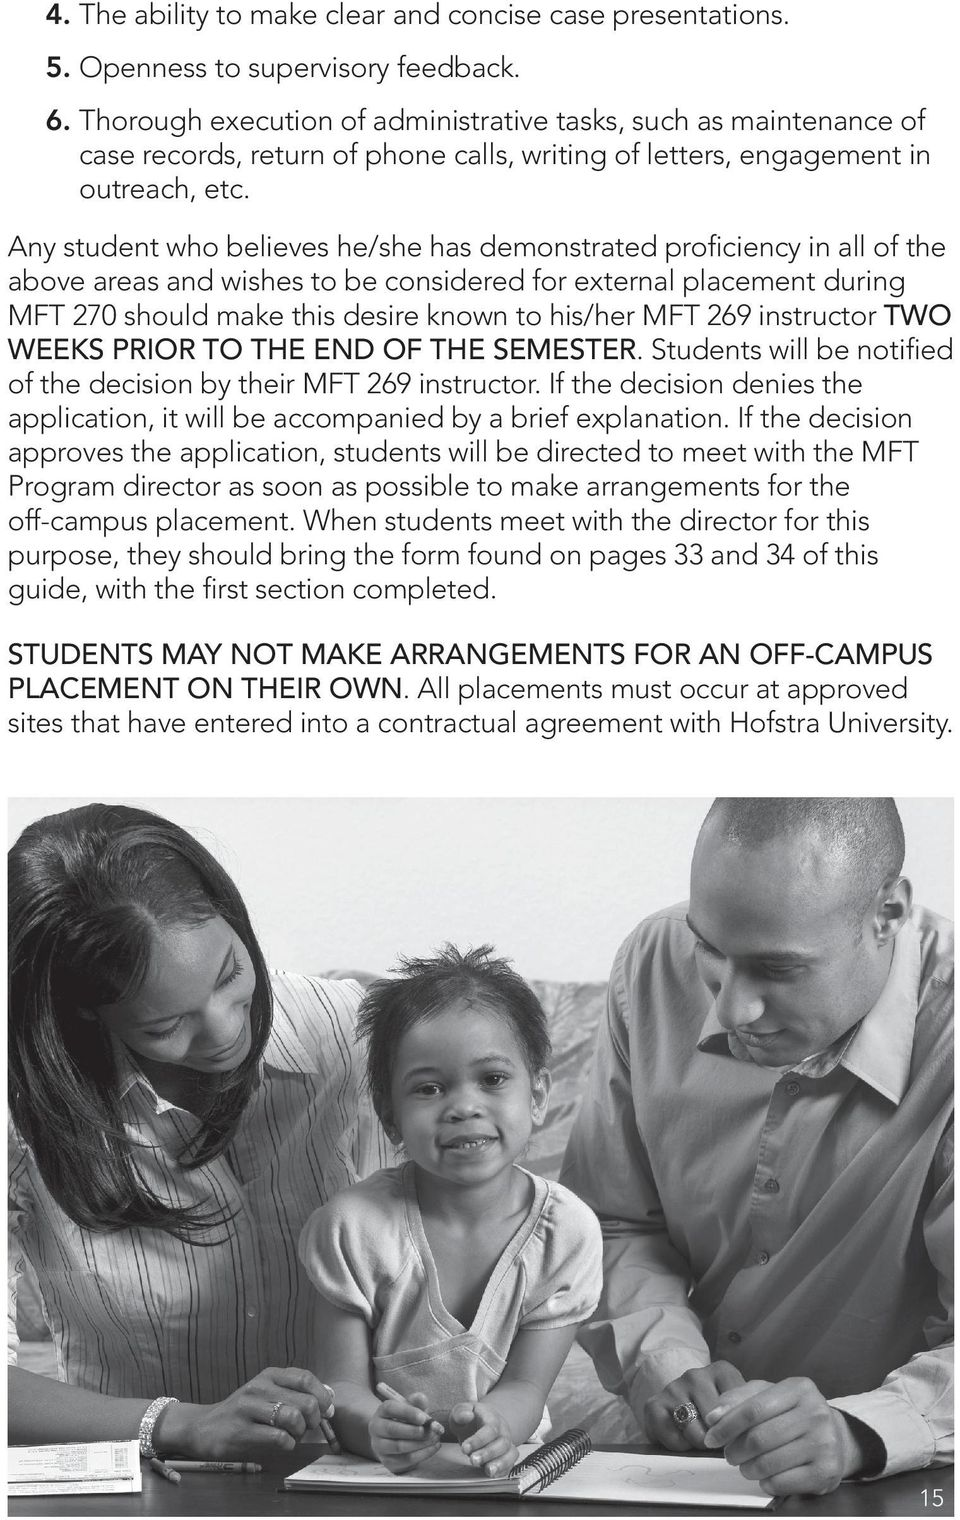 Any student who believes he/she has demonstrated proficiency in all of the above areas and wishes to be considered for external placement during MFT 270 should make this desire known to his/her MFT